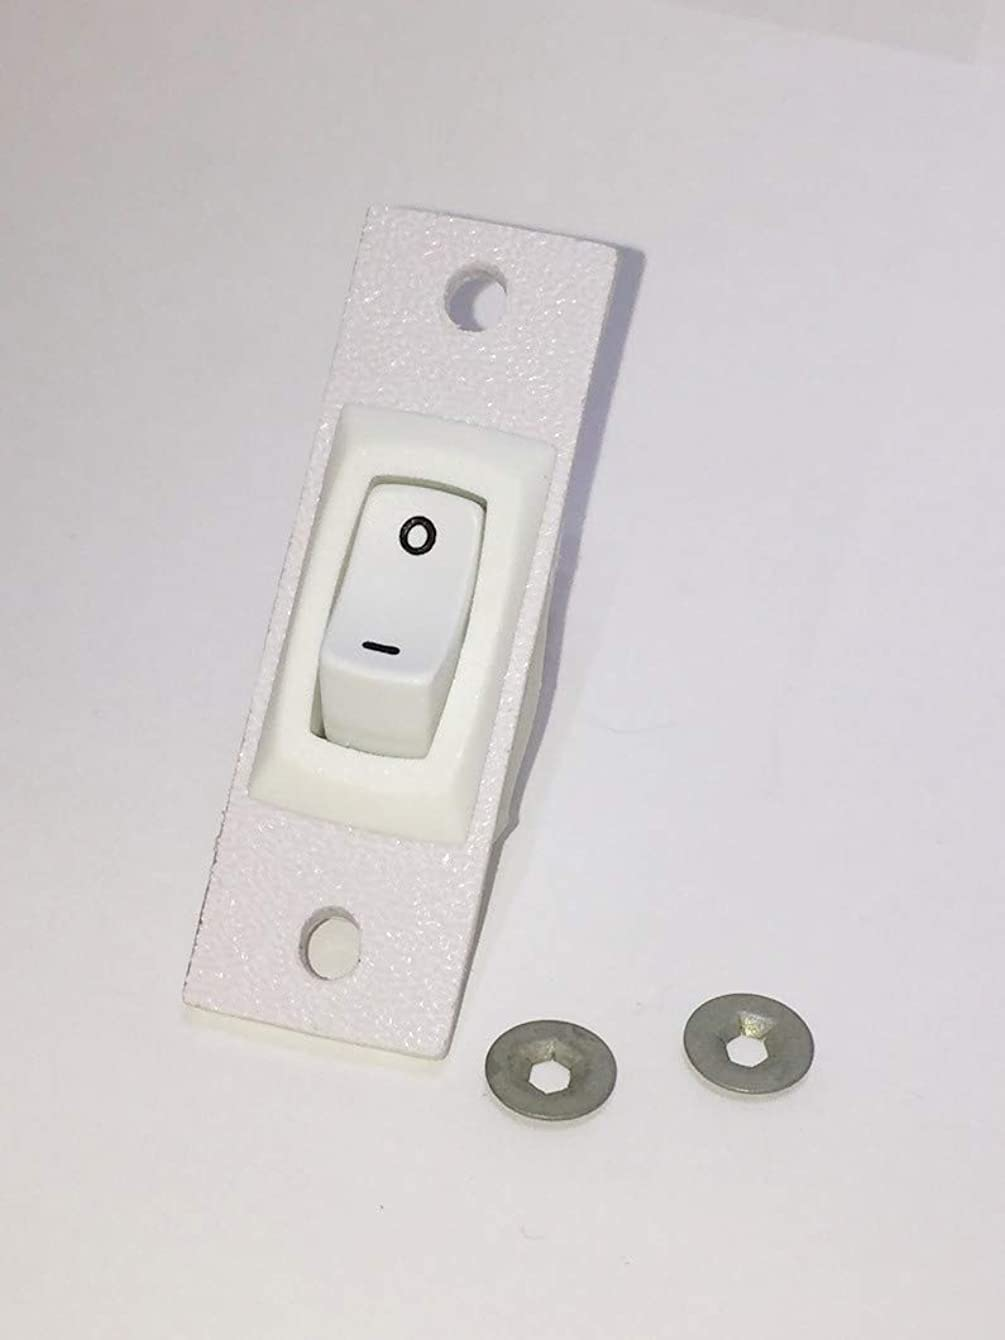 Jenn-air Cooktop Stove Fan Switch (White Color) Replacement (Not Original) 2 Wire Kit 12200039